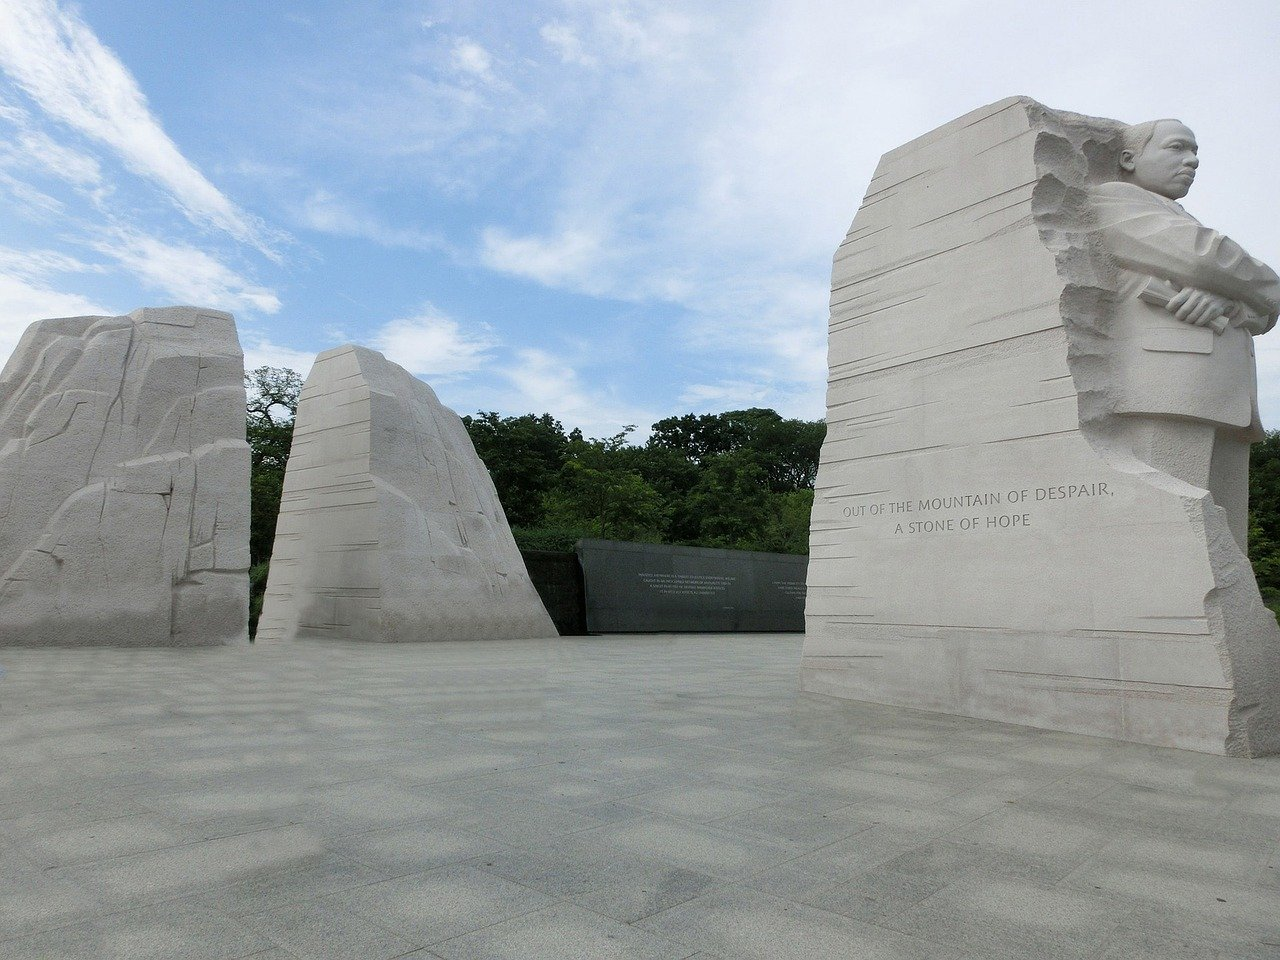 image of the Martin Luther King Jr. Memorial